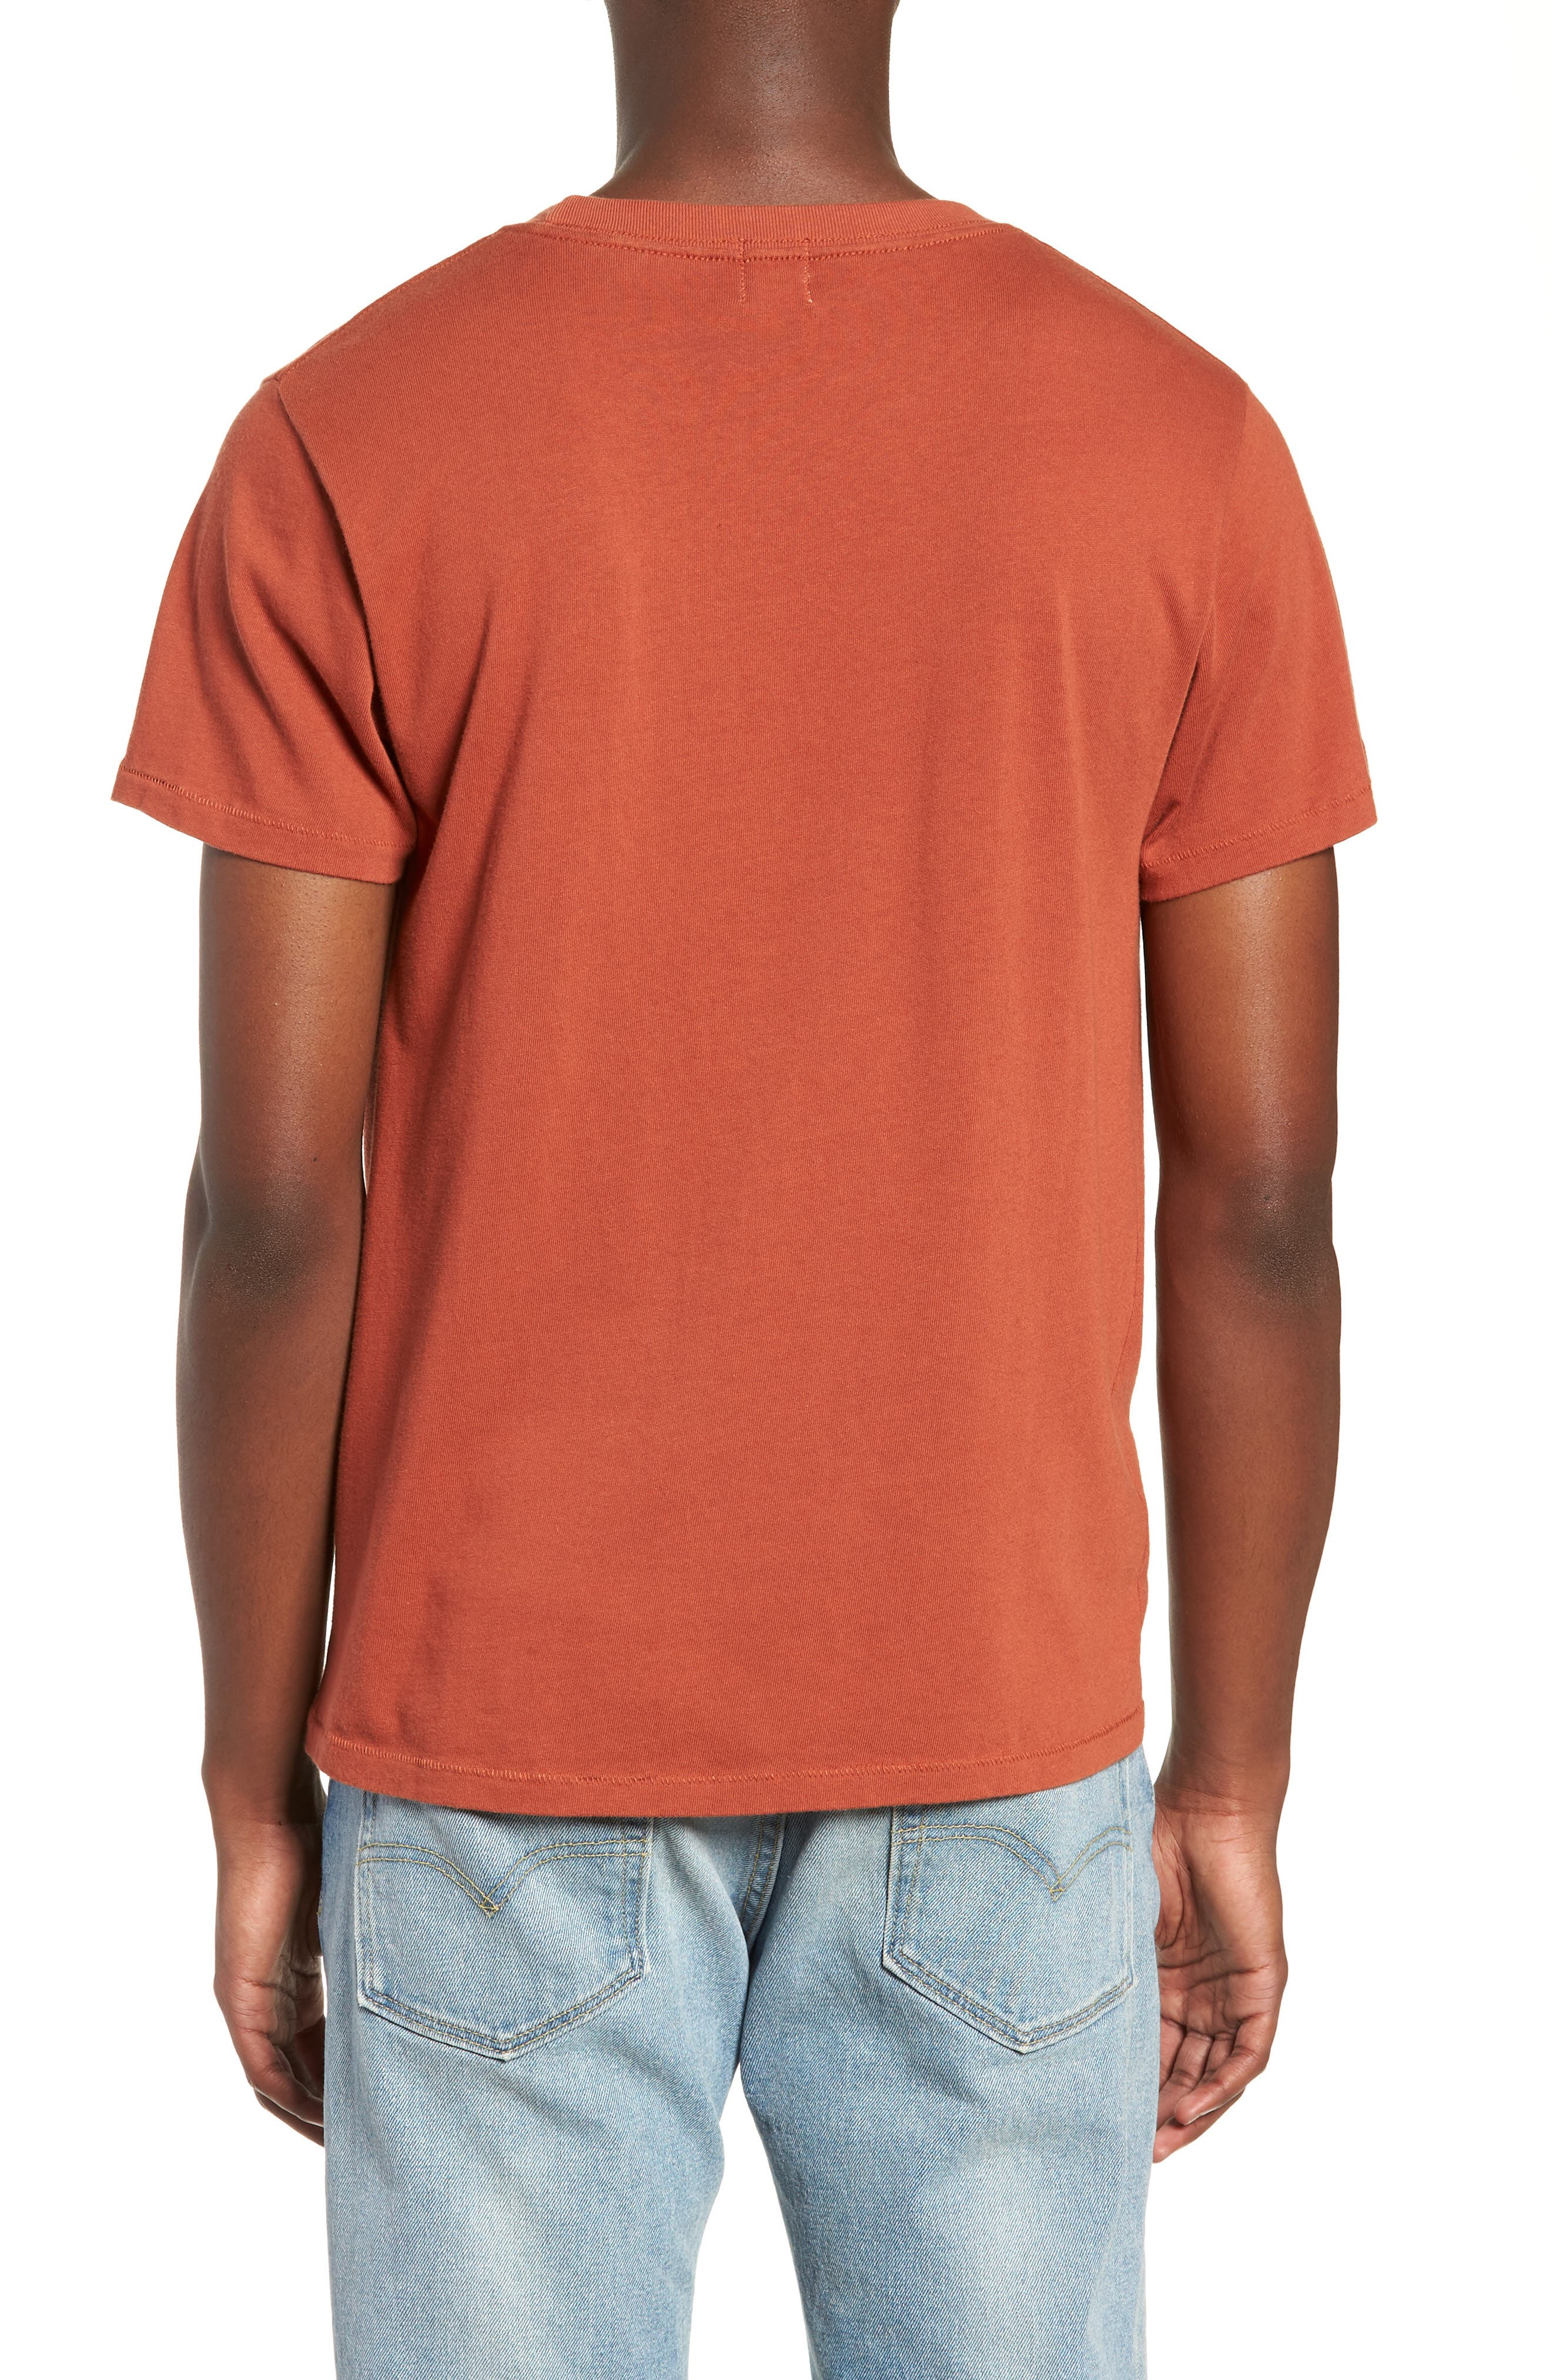 Levi's<sup>®</sup> Made & Crafted<sup>™</sup> Graphic Slim Fit T-Shirt,                             Alternate thumbnail 2, color,                             801